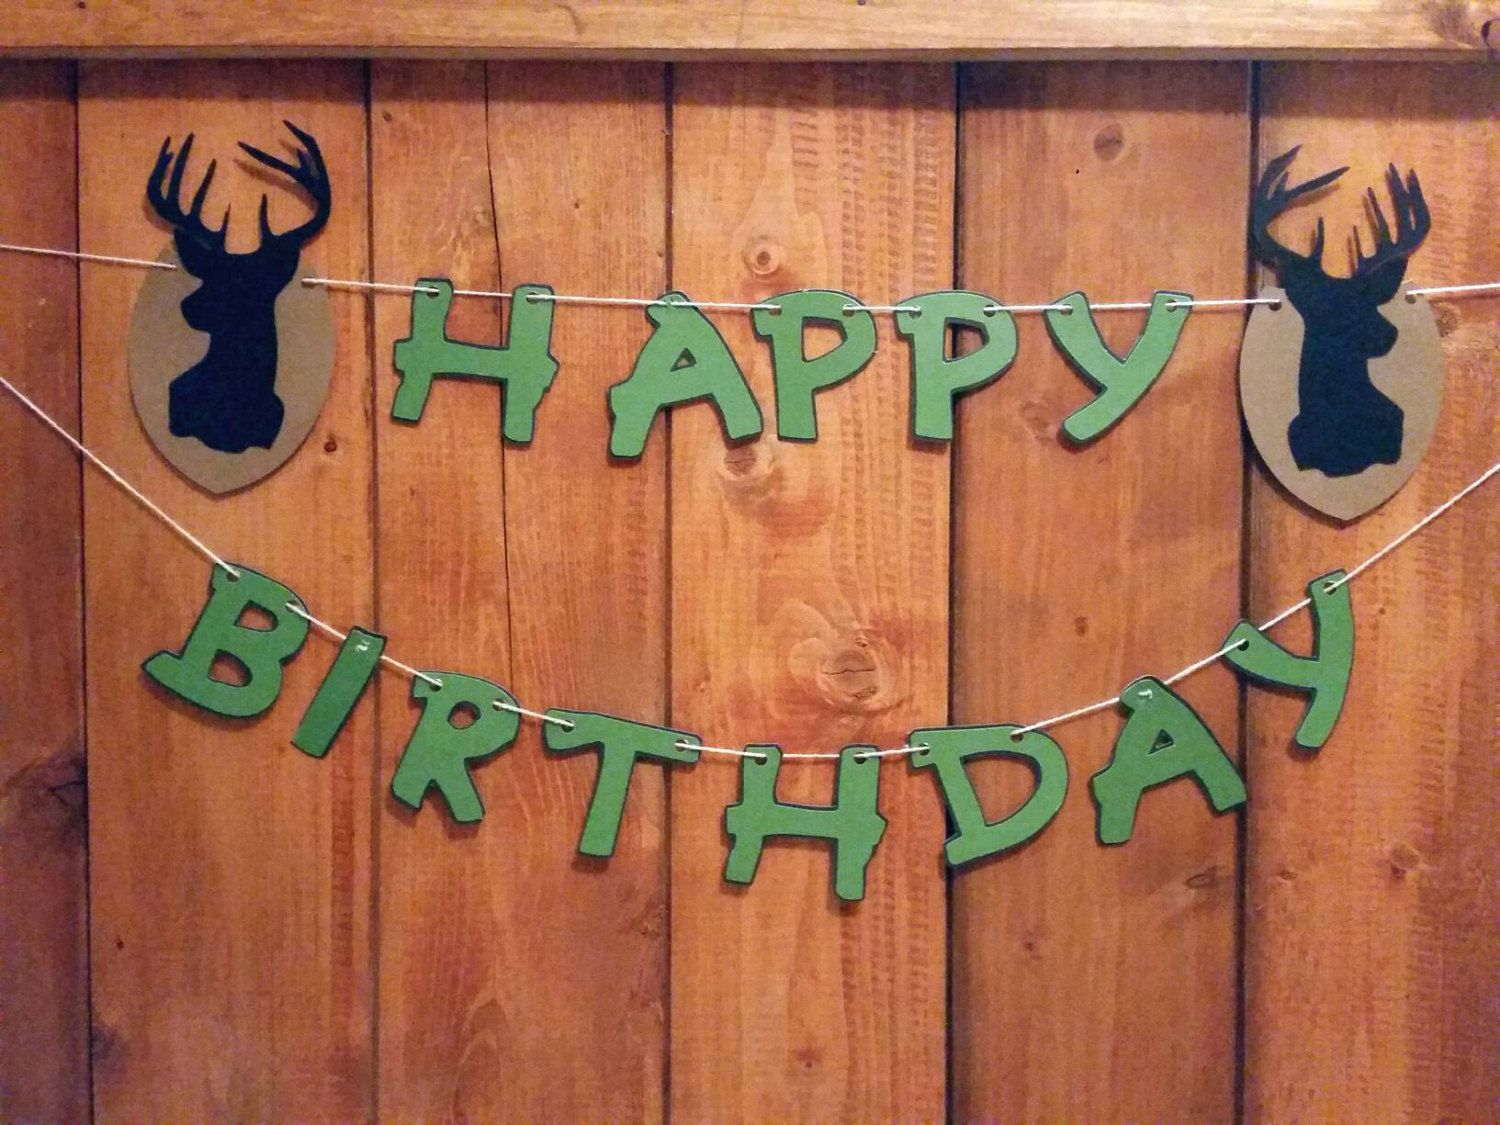 best 25 hunting camo ideas on pinterest camo wedding hunting hunting birthday party deer birthday hunting birthday deer party hunting camo deer head sportsman hunting retirement party